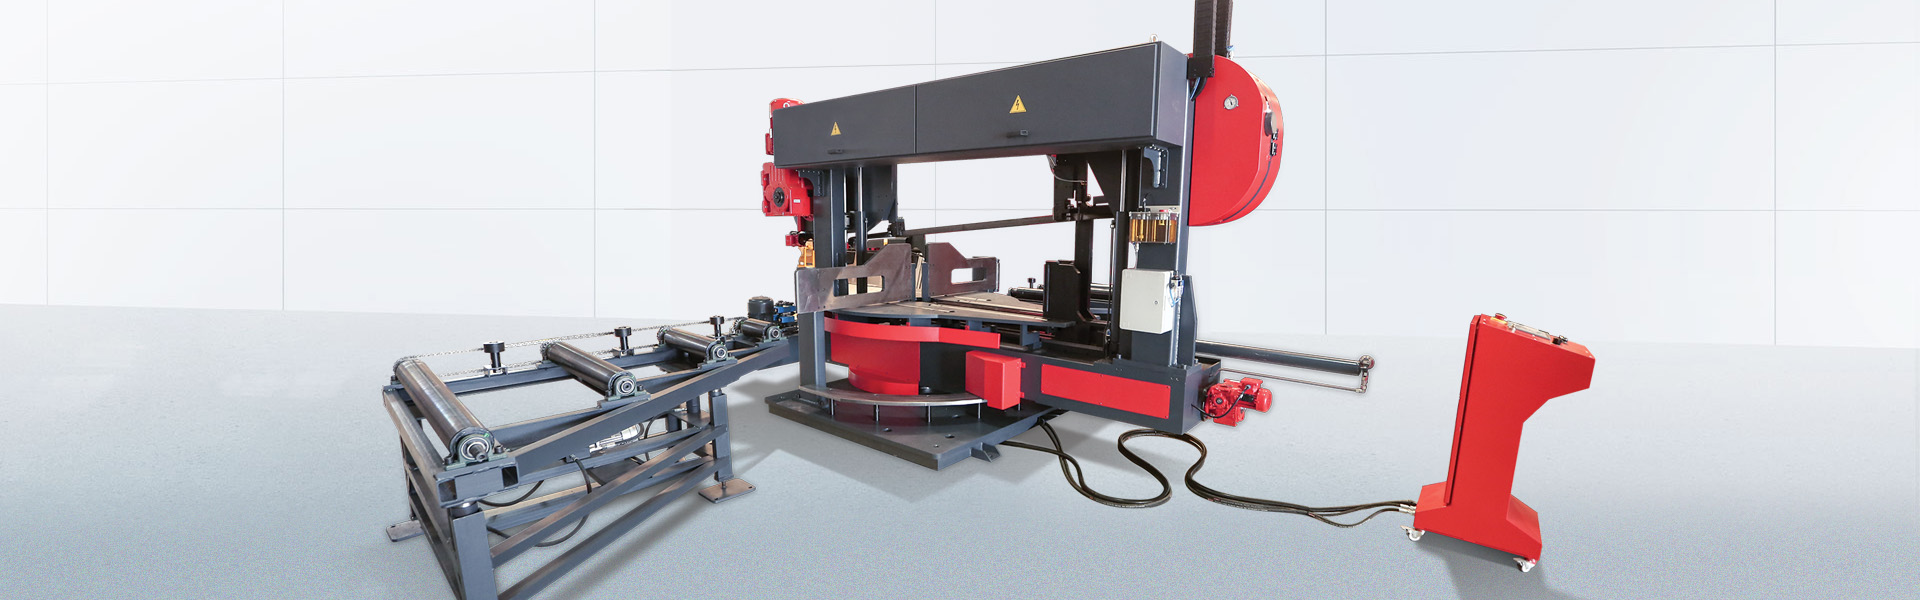 AST 1200-500 Bandsaw